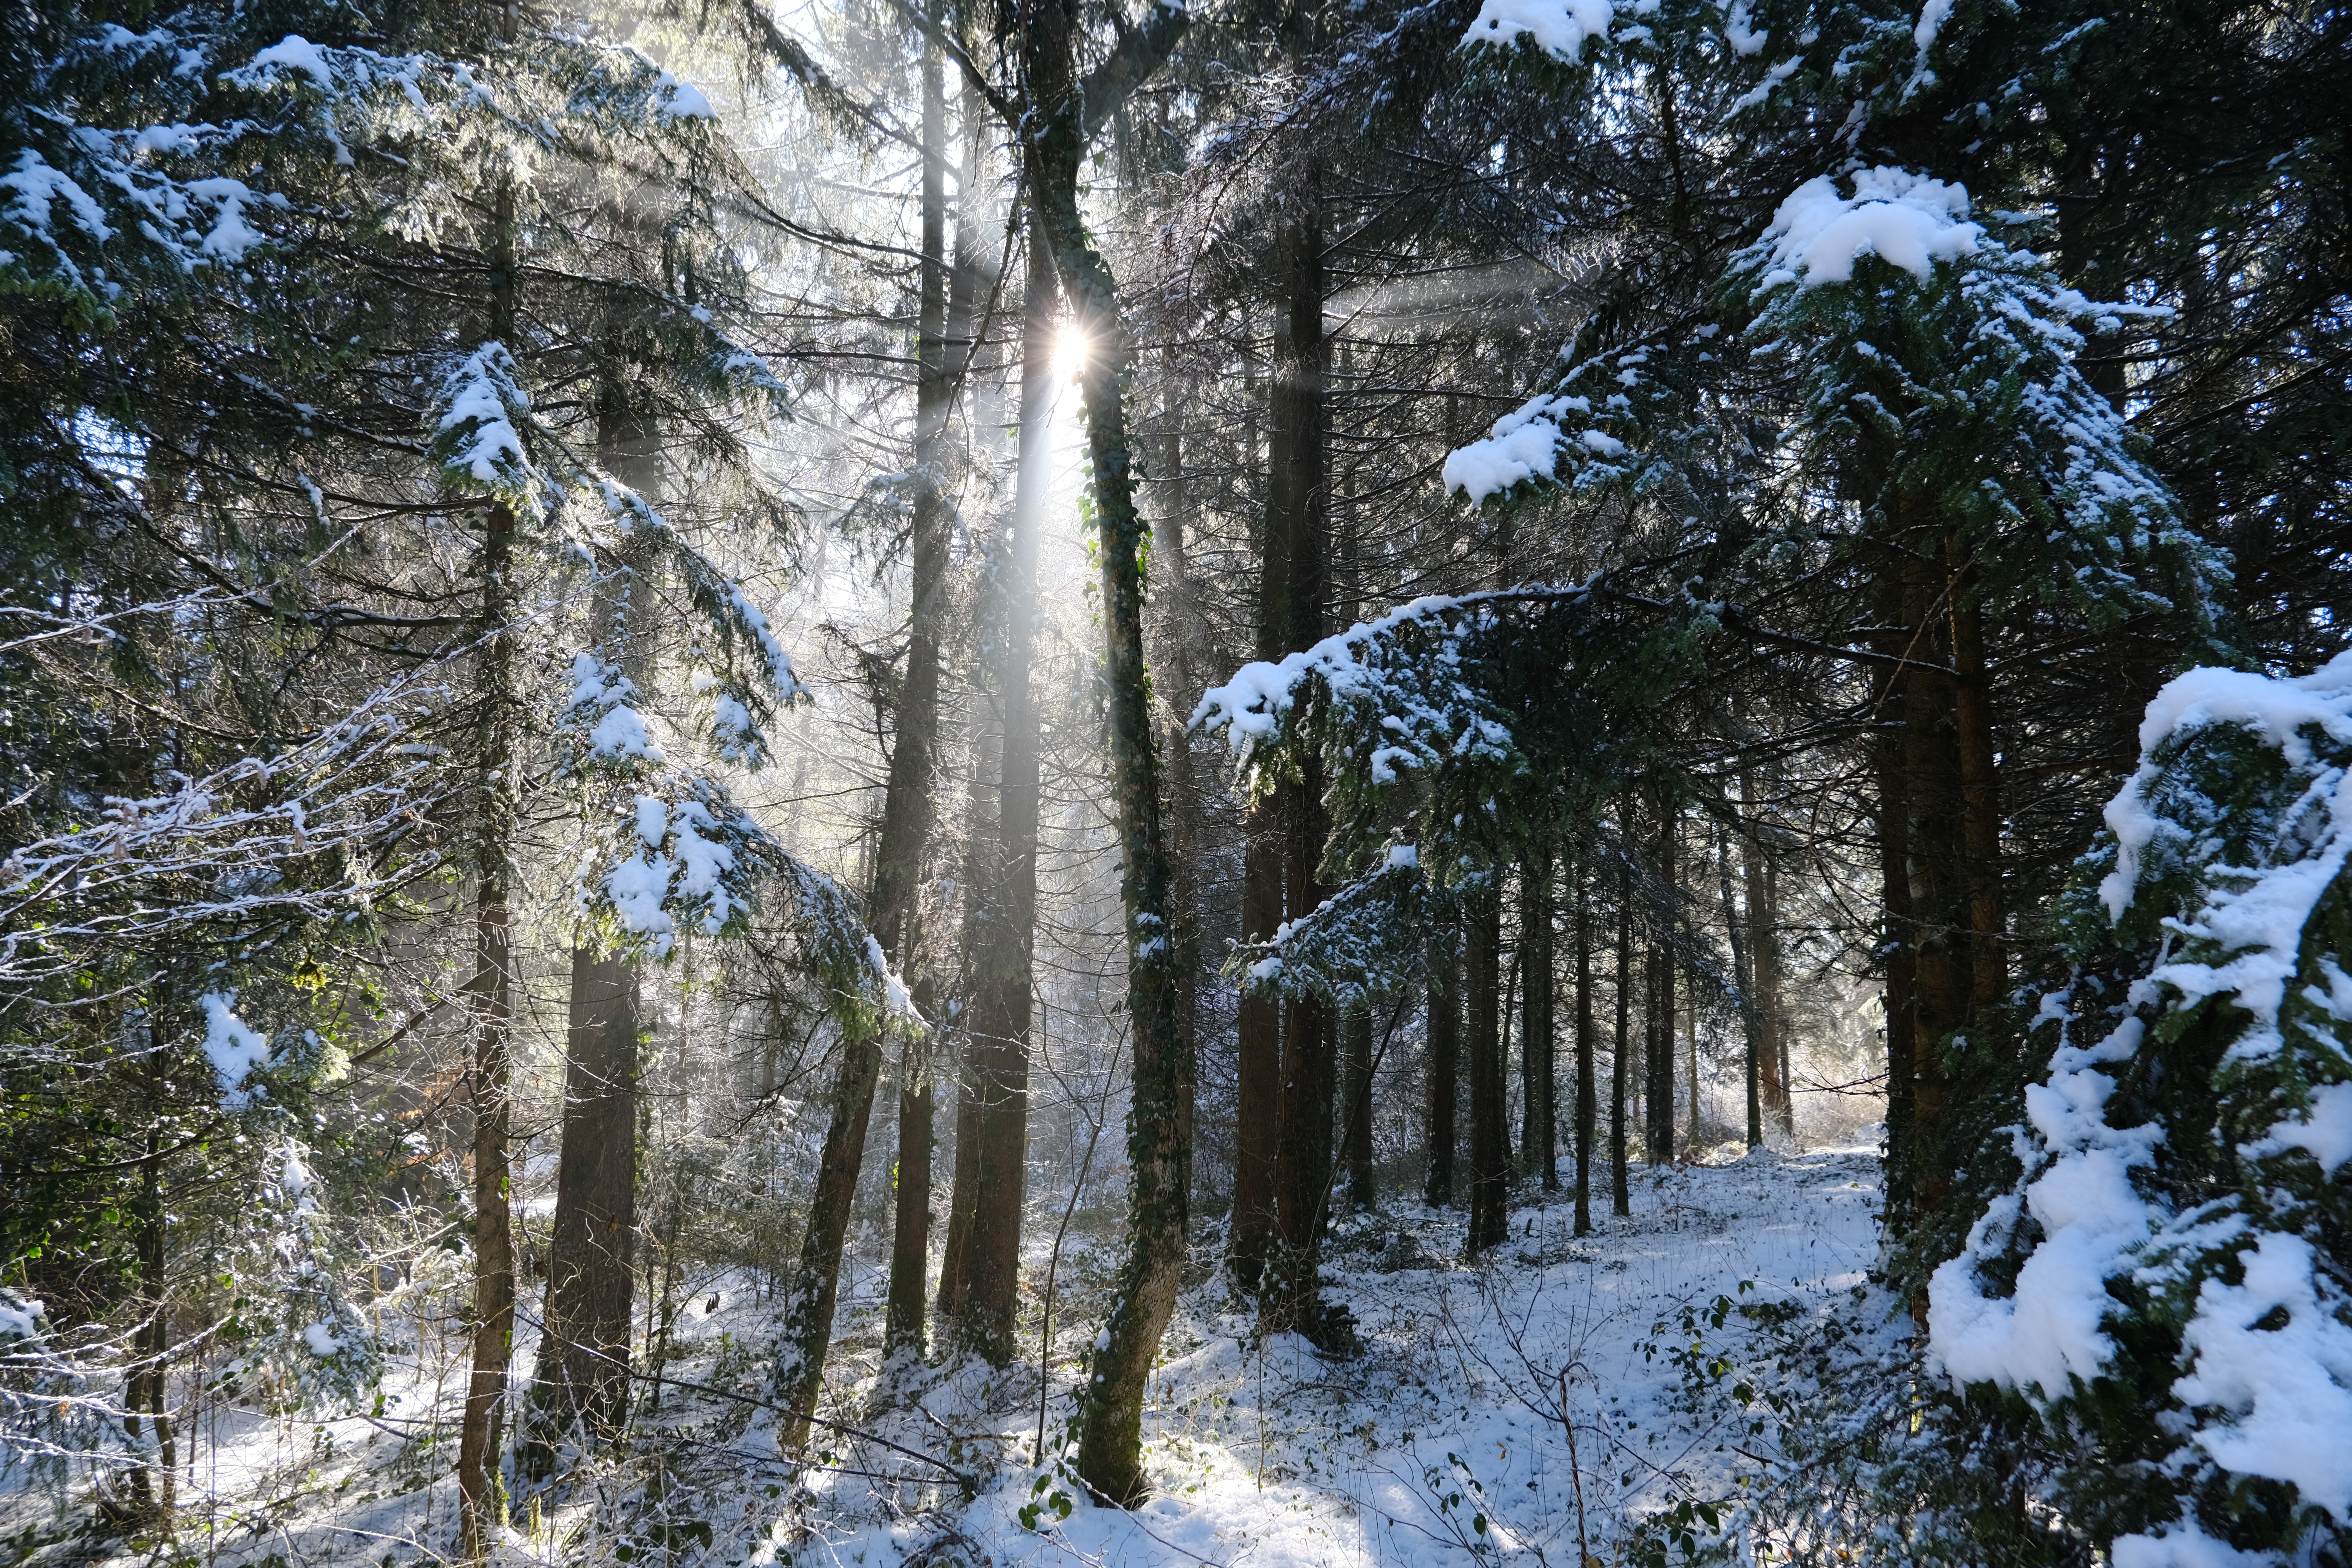 133158 download wallpaper Forest, Trees, Snow, Winter, Nature, Sun screensavers and pictures for free